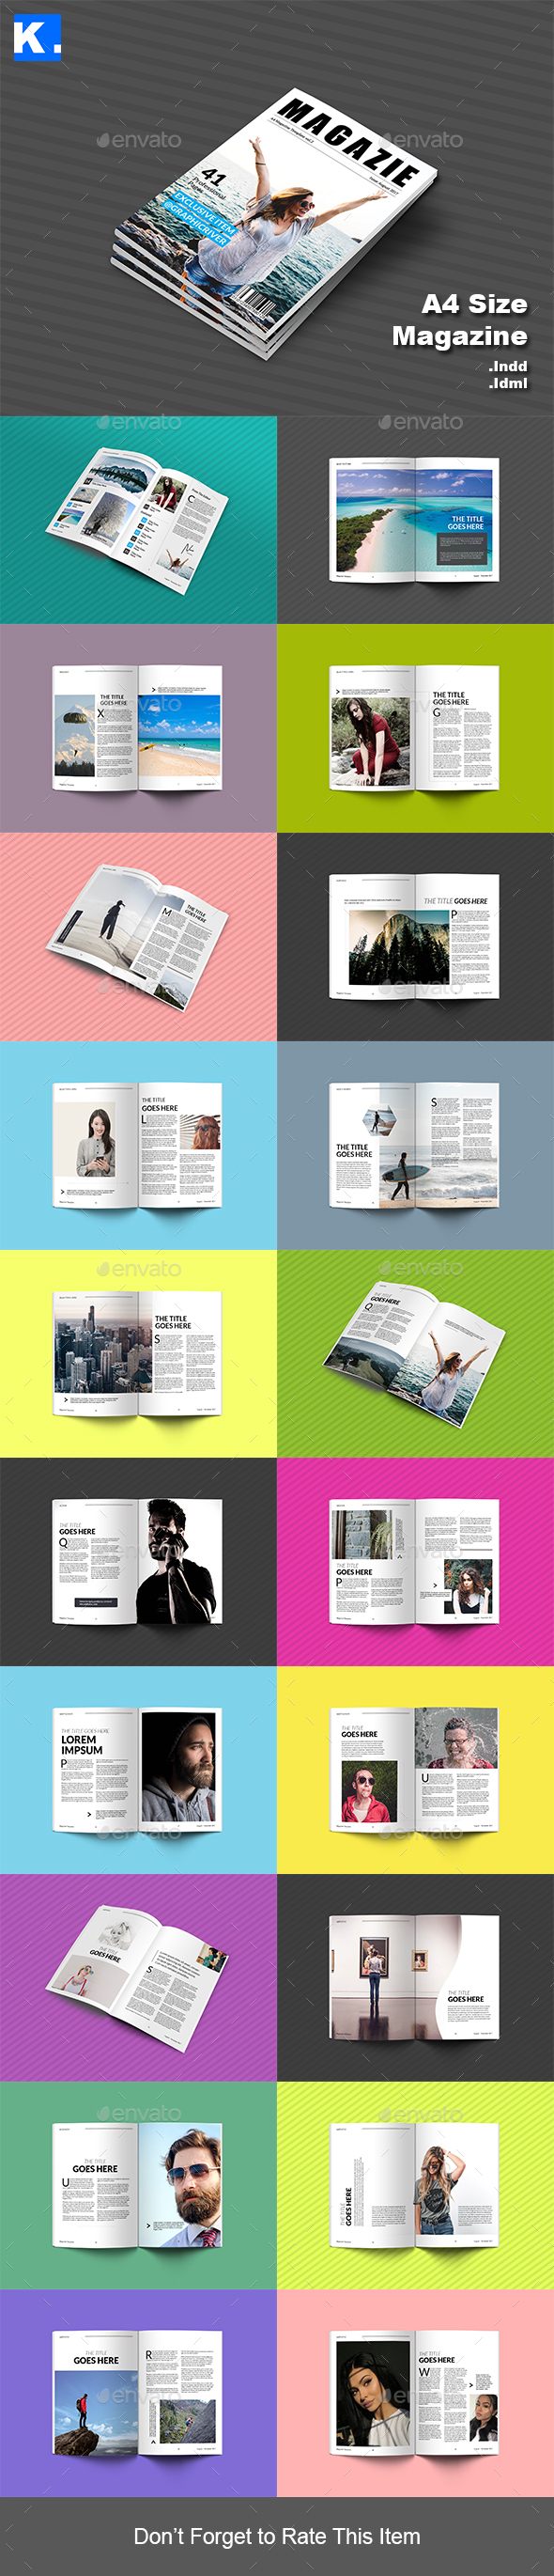 Indesign Magazine Template 2 - Magazines Print Templates